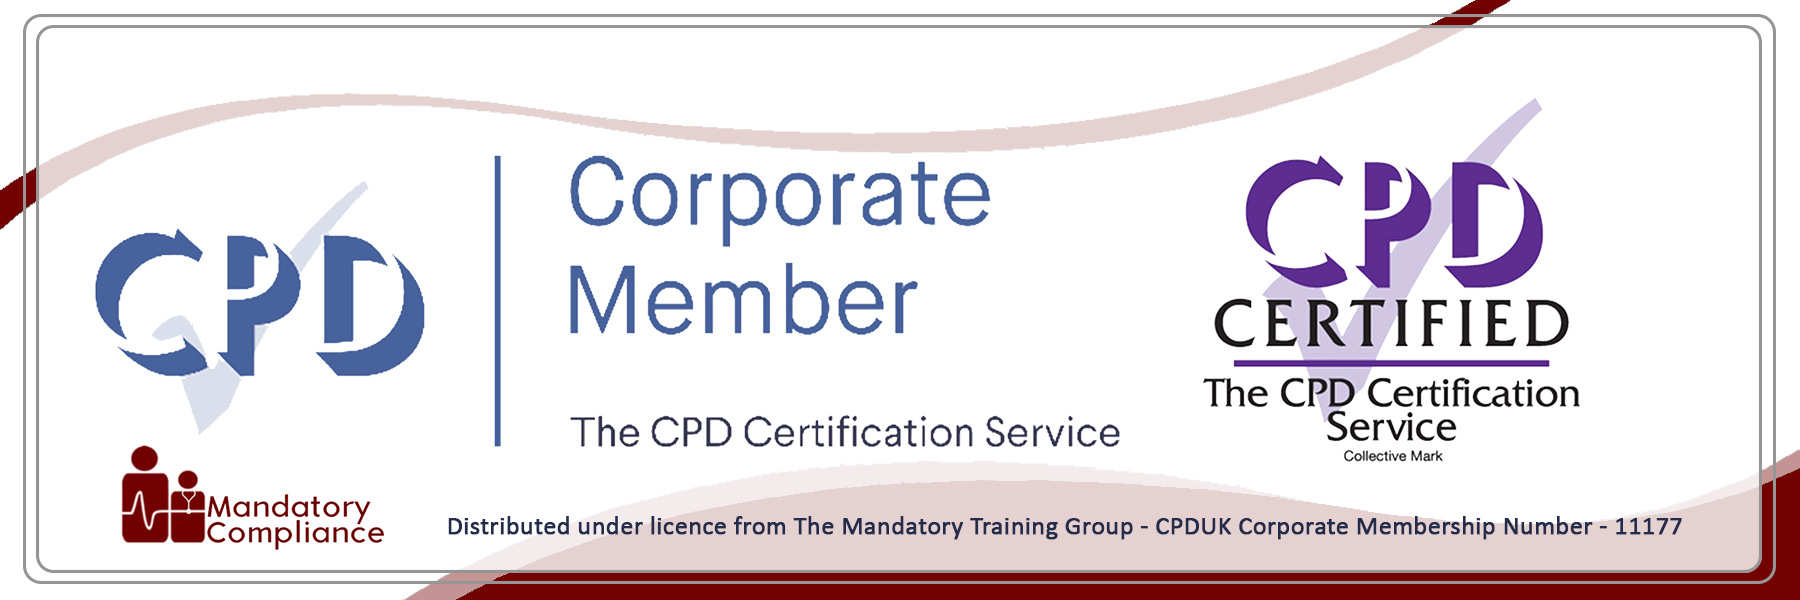 Prospecting and Lead Generation - Online Training Course - CPD Accredited - Mandatory Compliance UK -